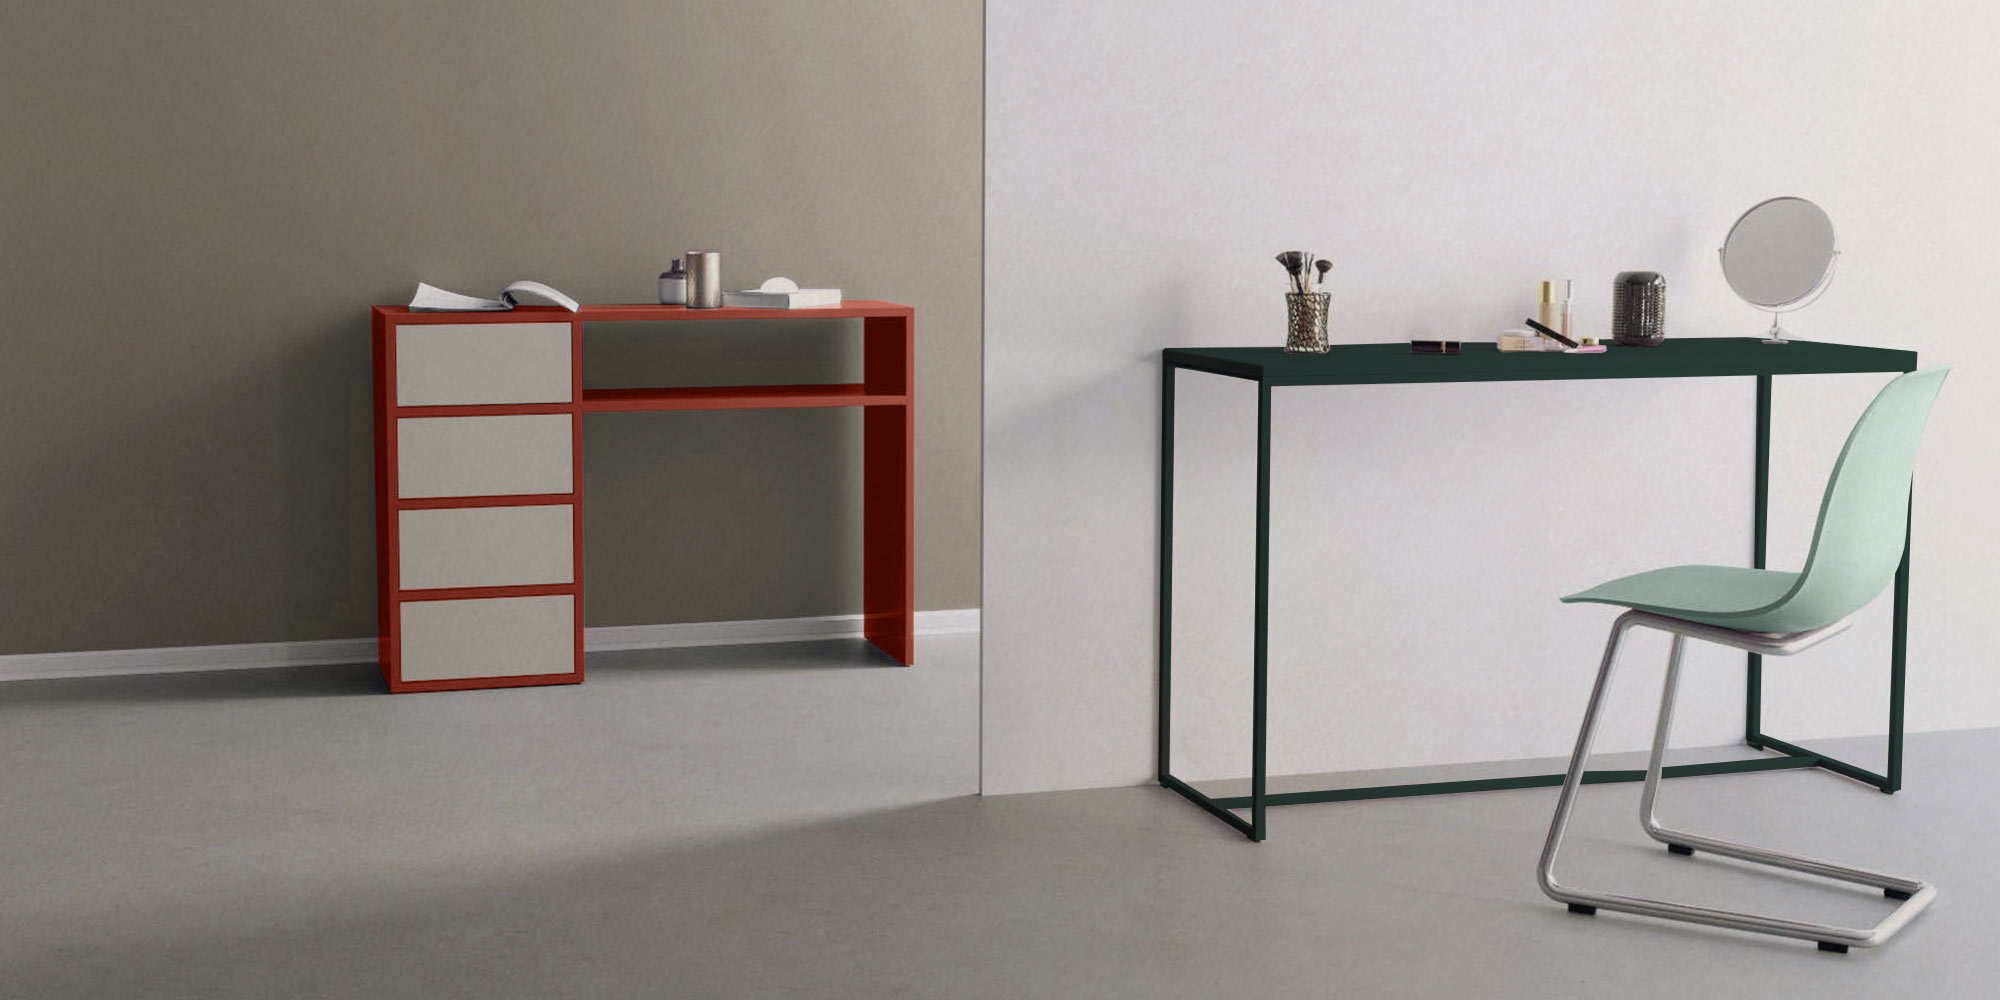 console tables in red and green